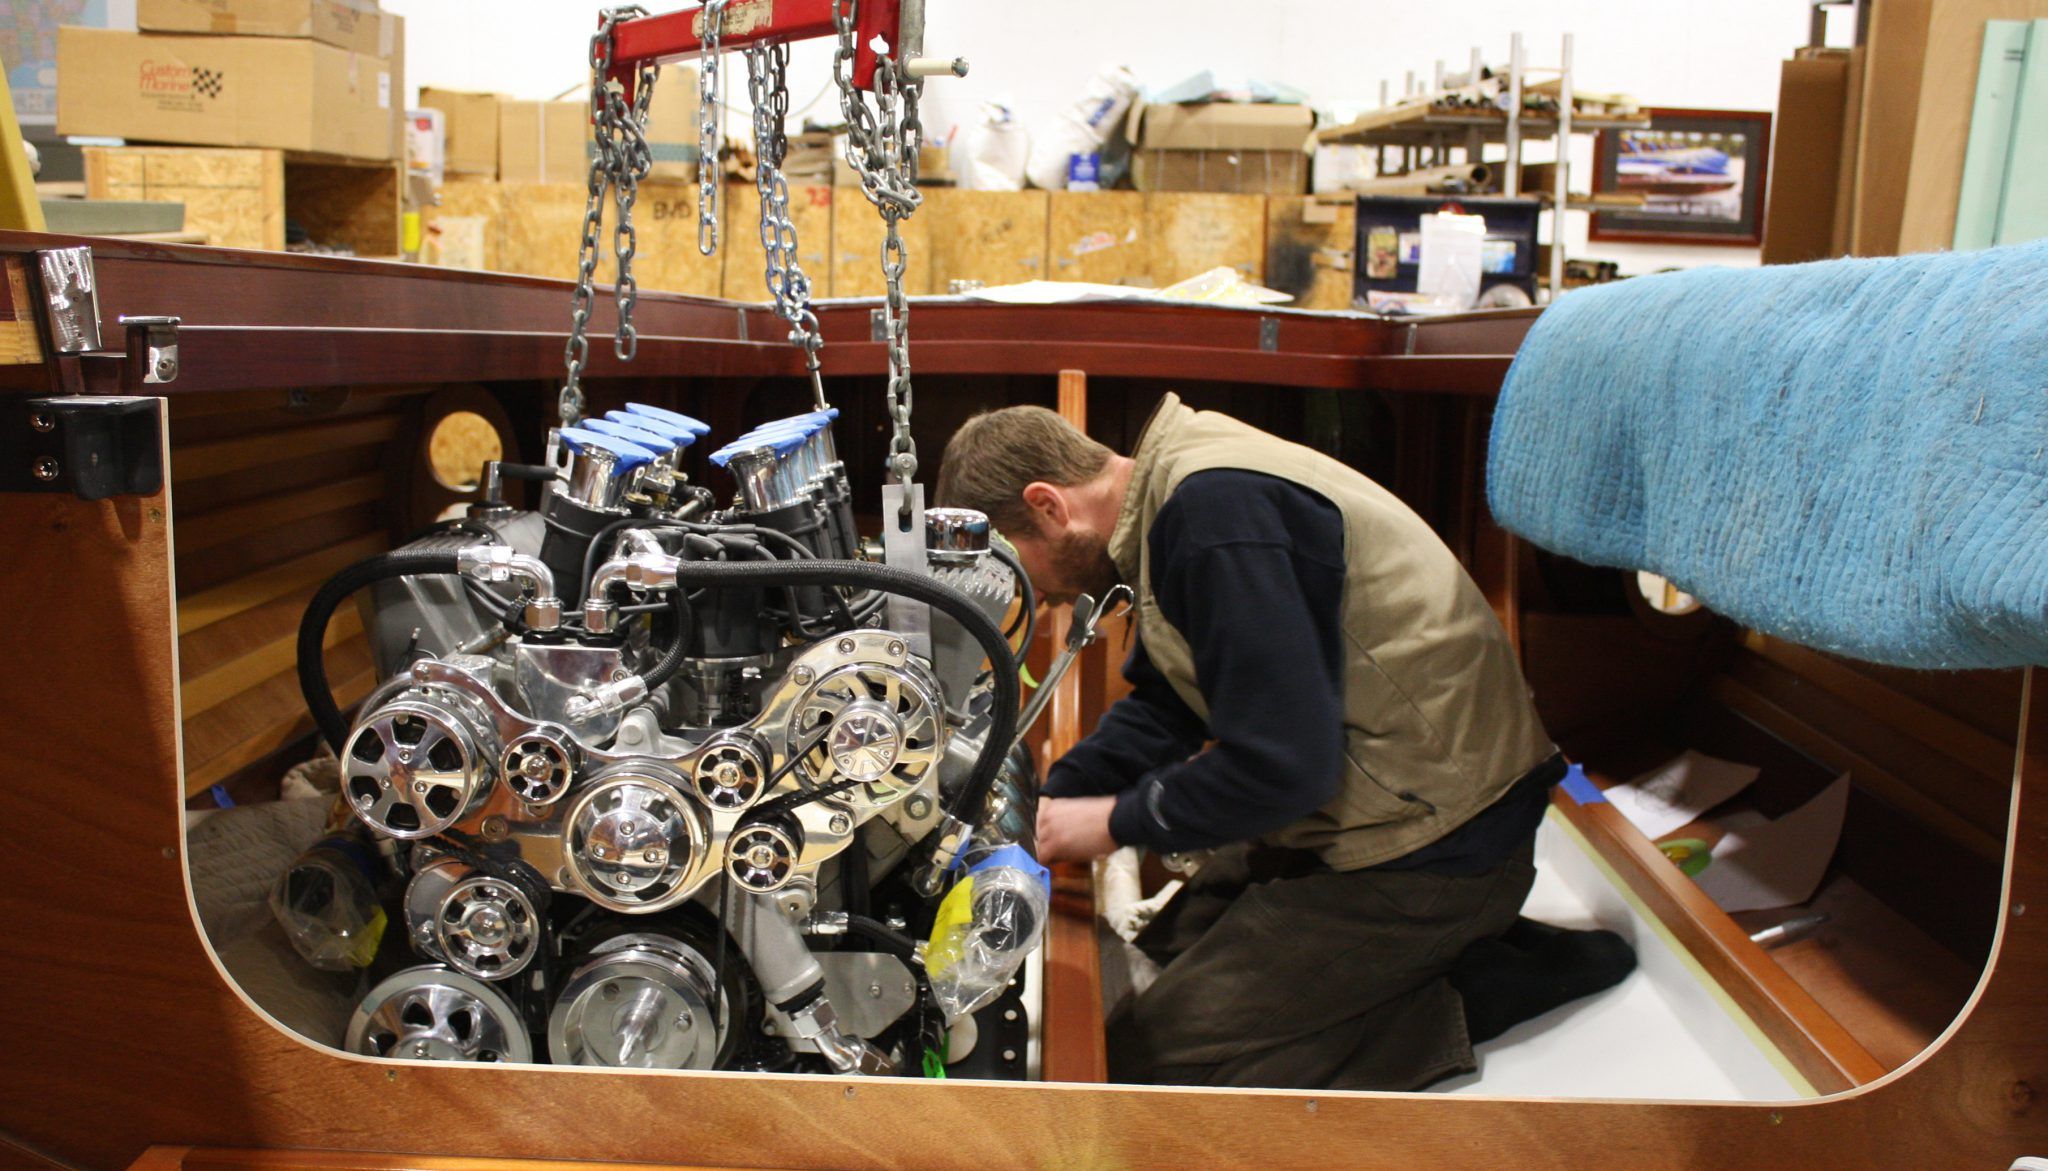 Installing the engines in VZ